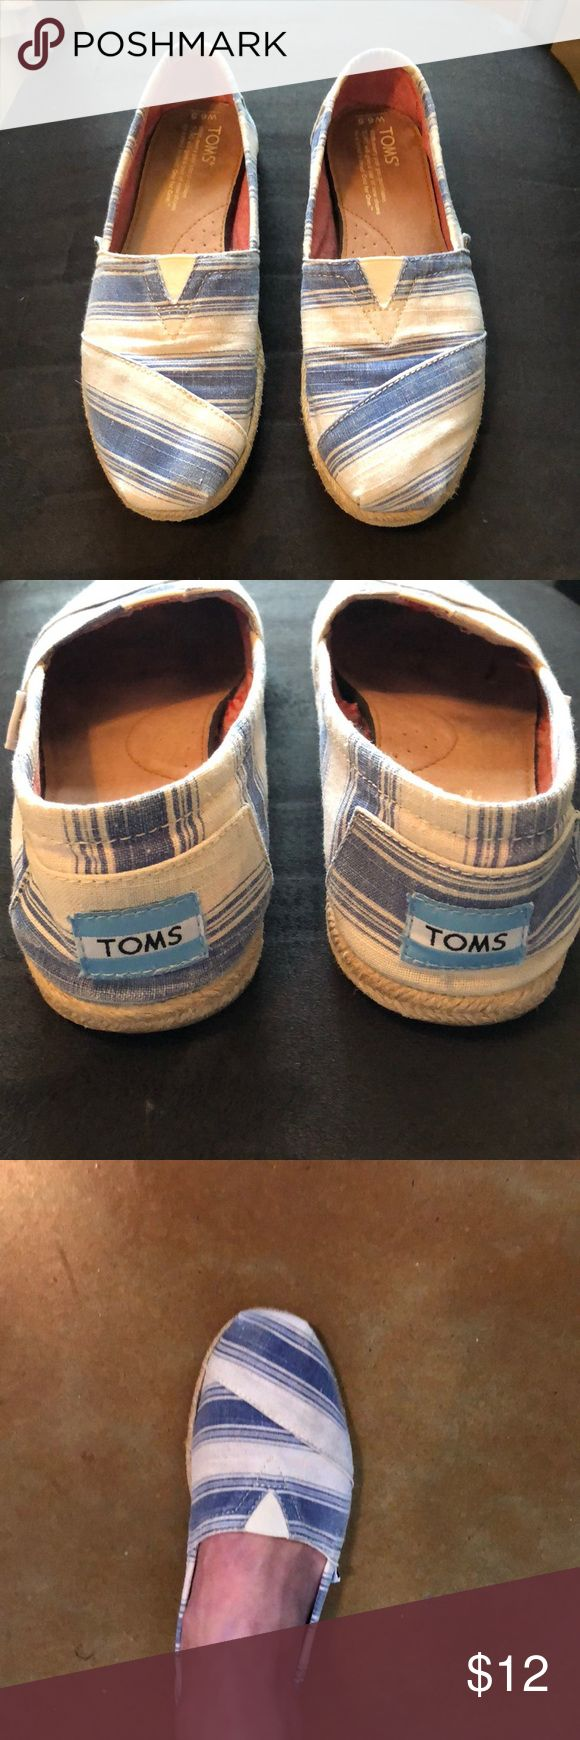 TOMS Espadrilles- Sz 6 1/2 Used Toms in good condition. These are umbrella striped blue/white Vegan Linen Classic Espadrilles. I wear a 7 except in these, I take 6 1/2.  I recommend these only if you are a 7! Make no mistake, these Toms are very used but still have a lot of life left. No defects or stains other than normal wear. TOMS Shoes Espadrilles